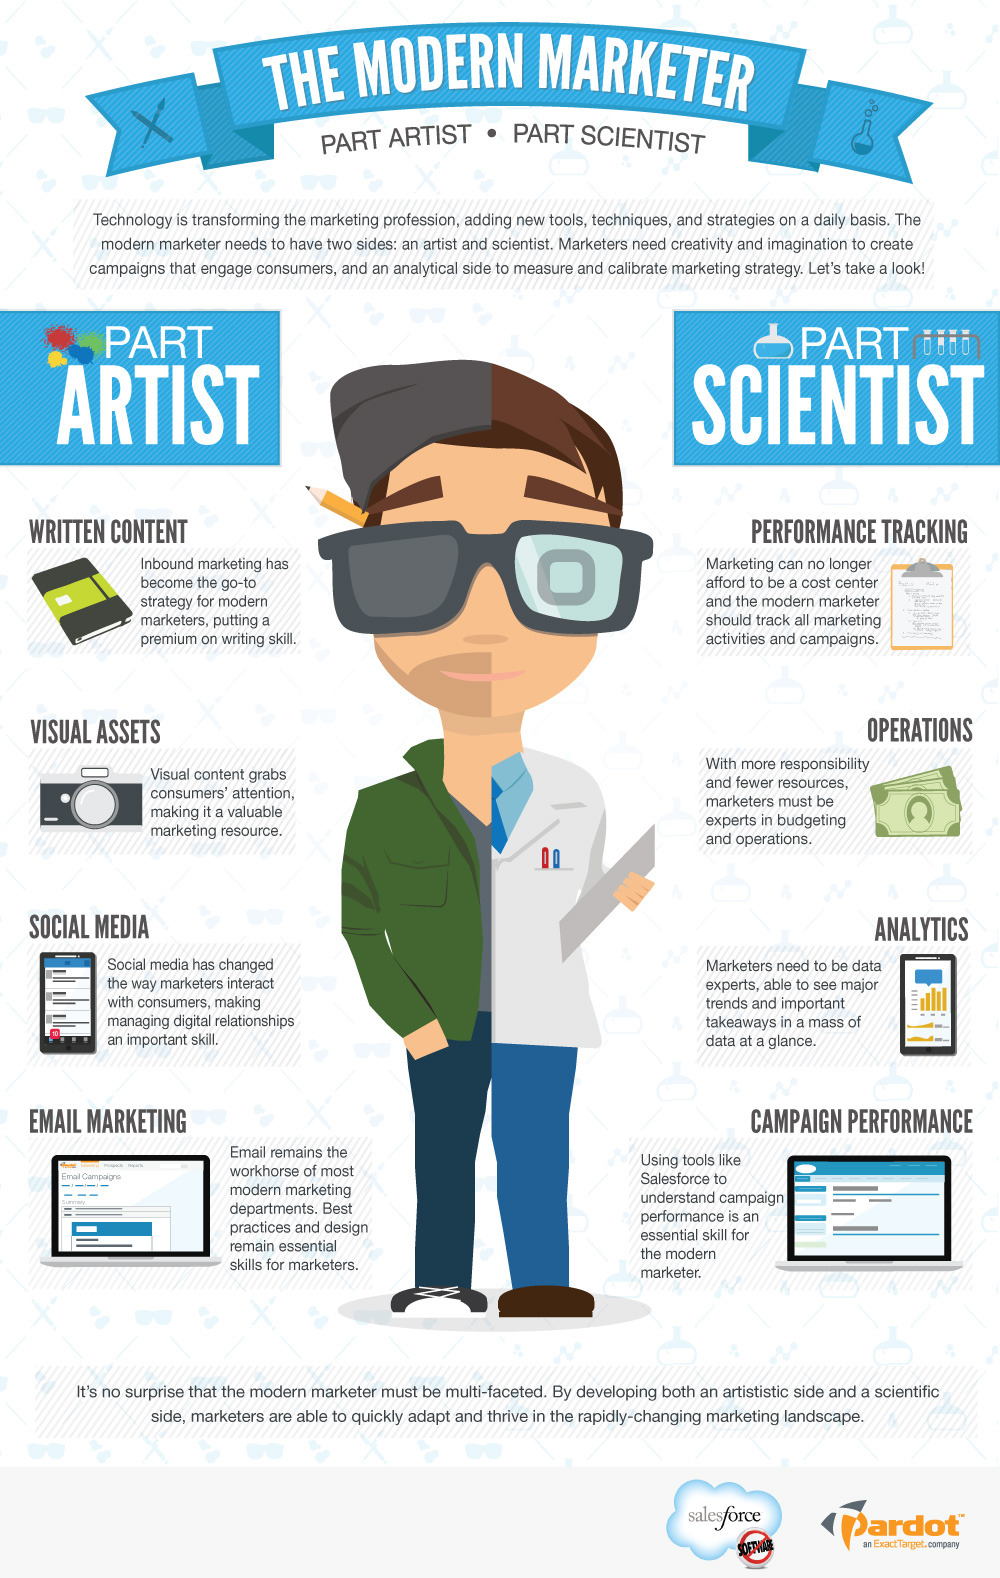 The Modern Marketer: Part Artist, Part Scientist [INFOGRAPHIC]The marketing profession is changing. The Mad Men-style era of marketing, which prized creativity…View Post